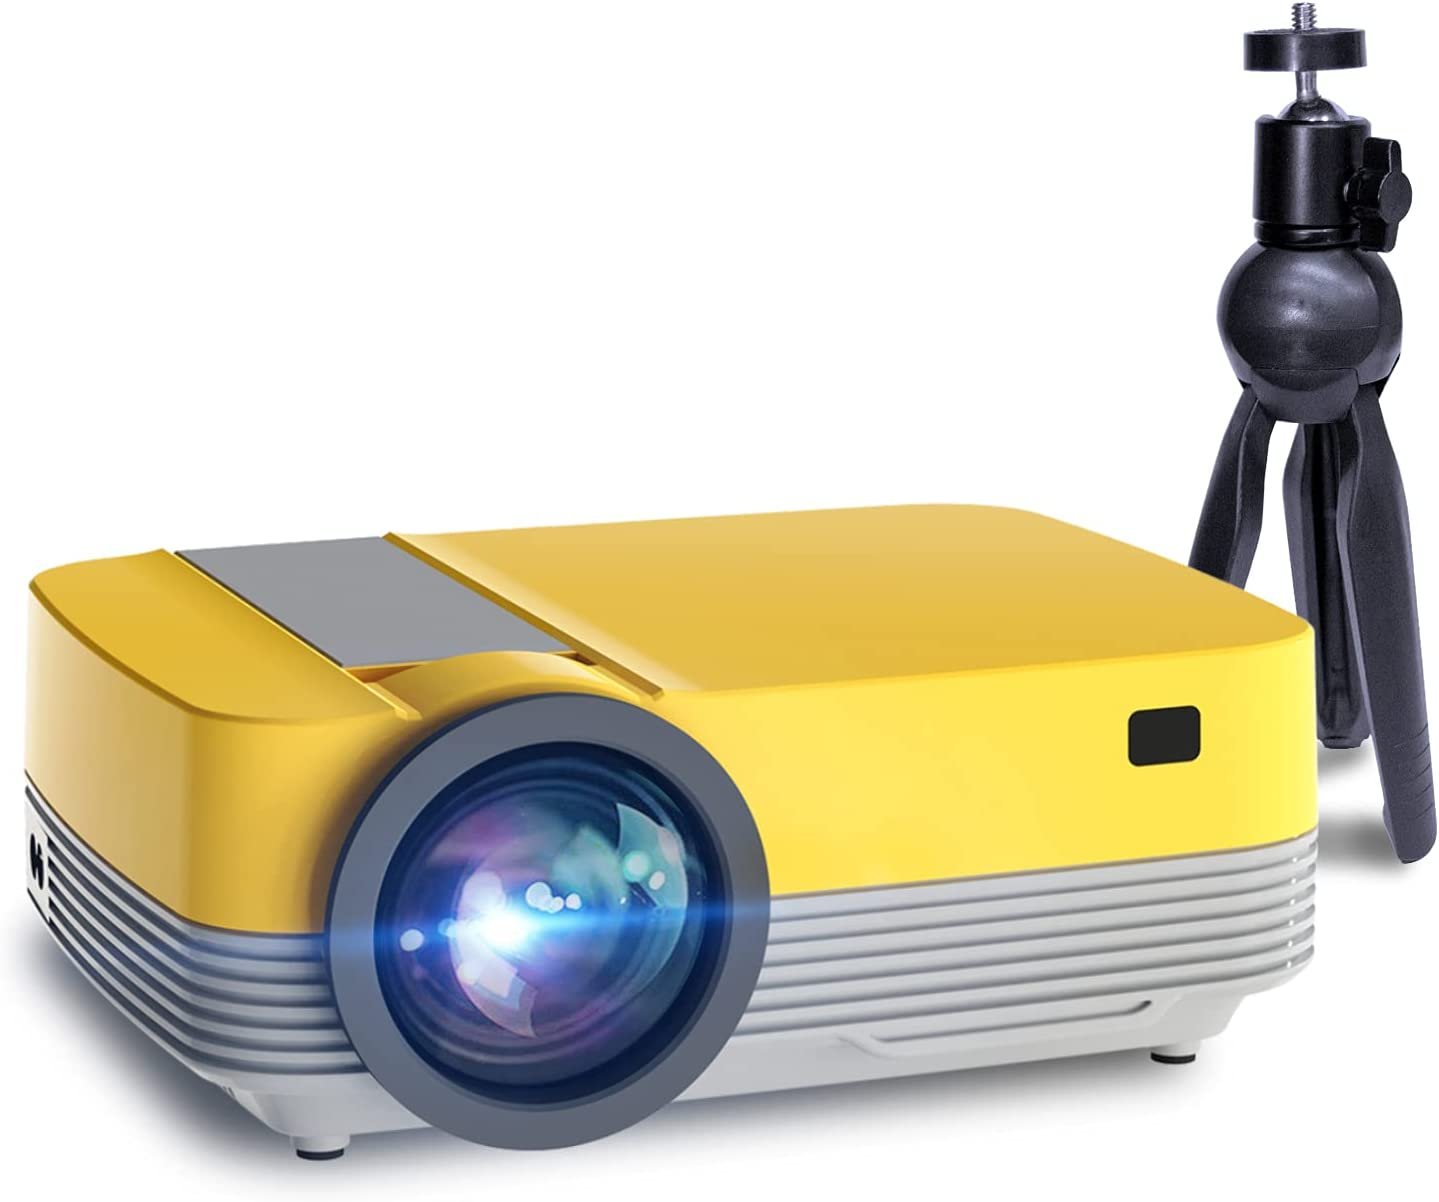 Mini Projector,Portable Movie Projector with Tripod,Outdoor Projector Native 720p Support 1080p,Home Theater Video Projector Compatible with Fire TV Stick,HDMI,USB,AV,PS5,Laptop